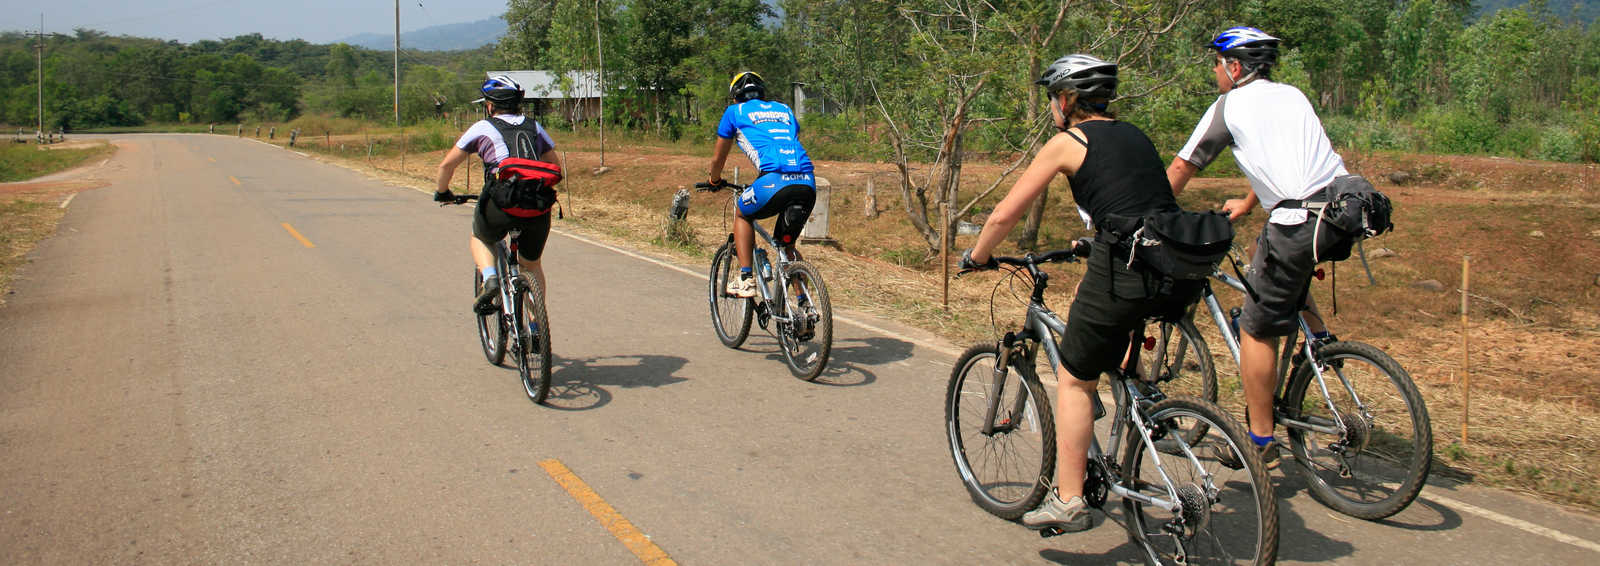 Cycling tour, Thailand